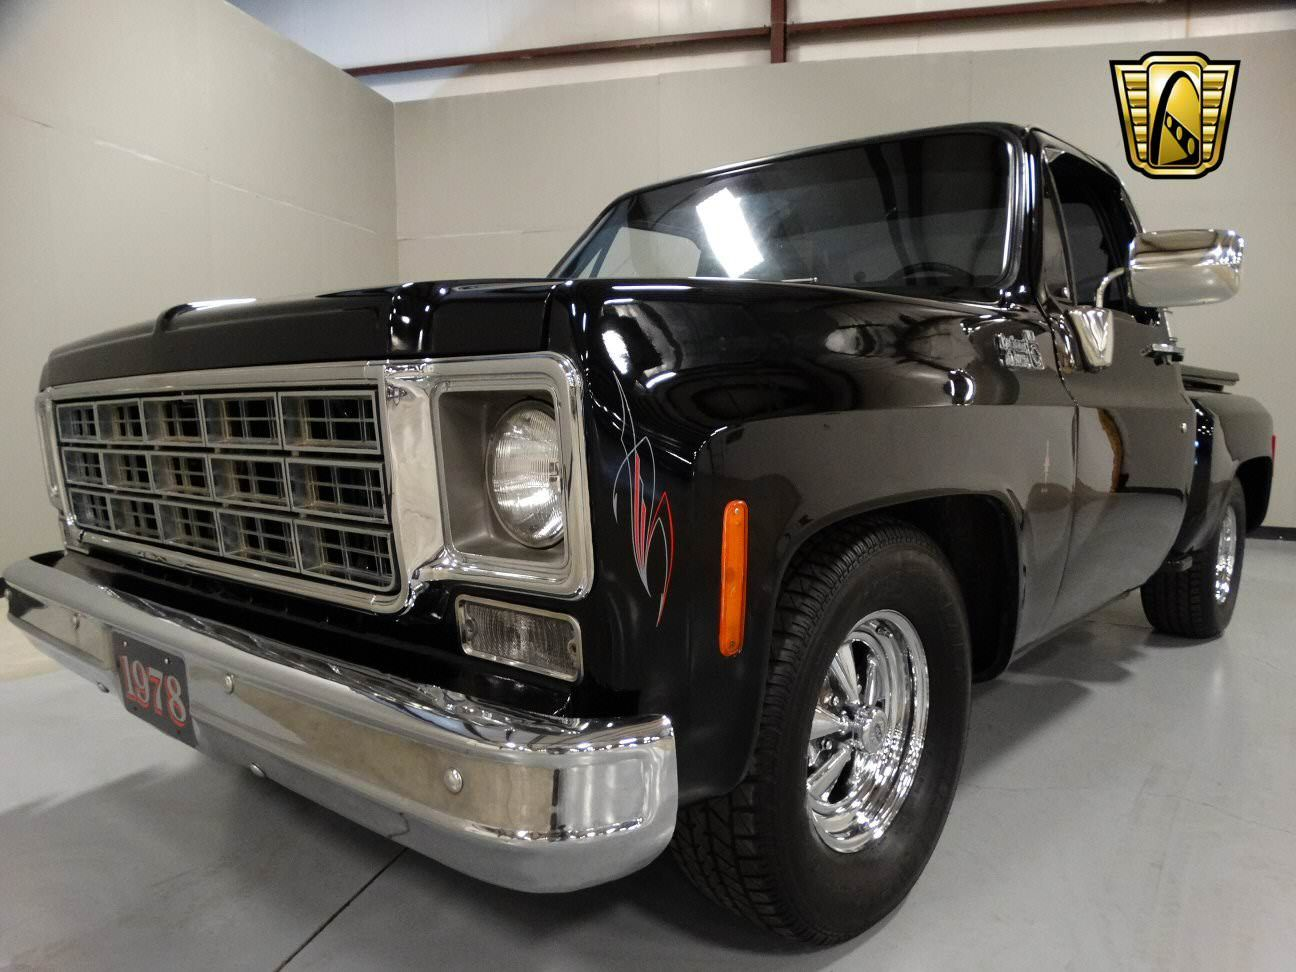 hight resolution of 1978 chevy c10 autotrader classics 1978 chevrolet c10 truck black 8 cylinder